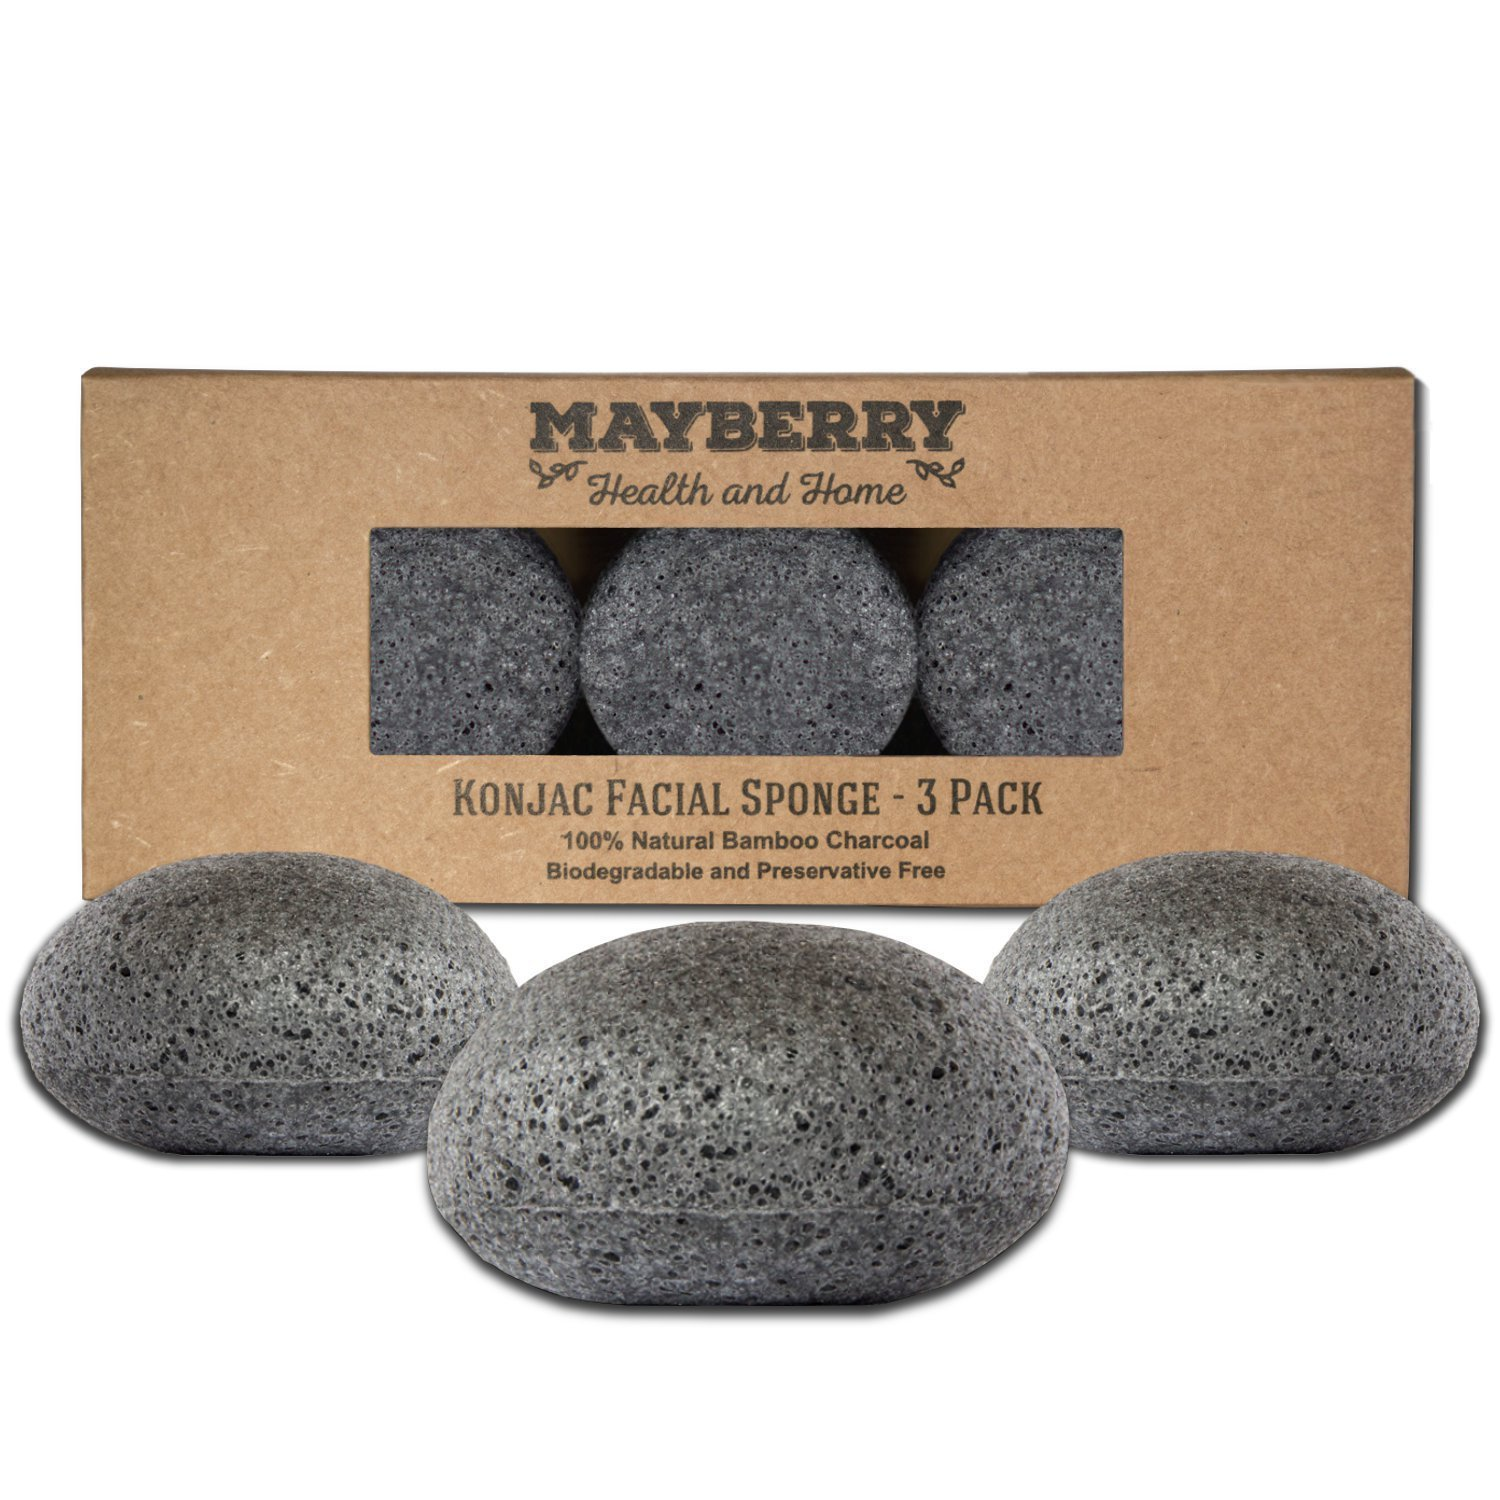 Konjac Exfoliating Sponge with Bamboo Charcoal – 3 Pack - 100% Natural Charcoal Face Sponge for Improving Skin's Look and Feel - Face Charcoal Sponge with Attached String for Hanging to Dry Mayberry Health and Home